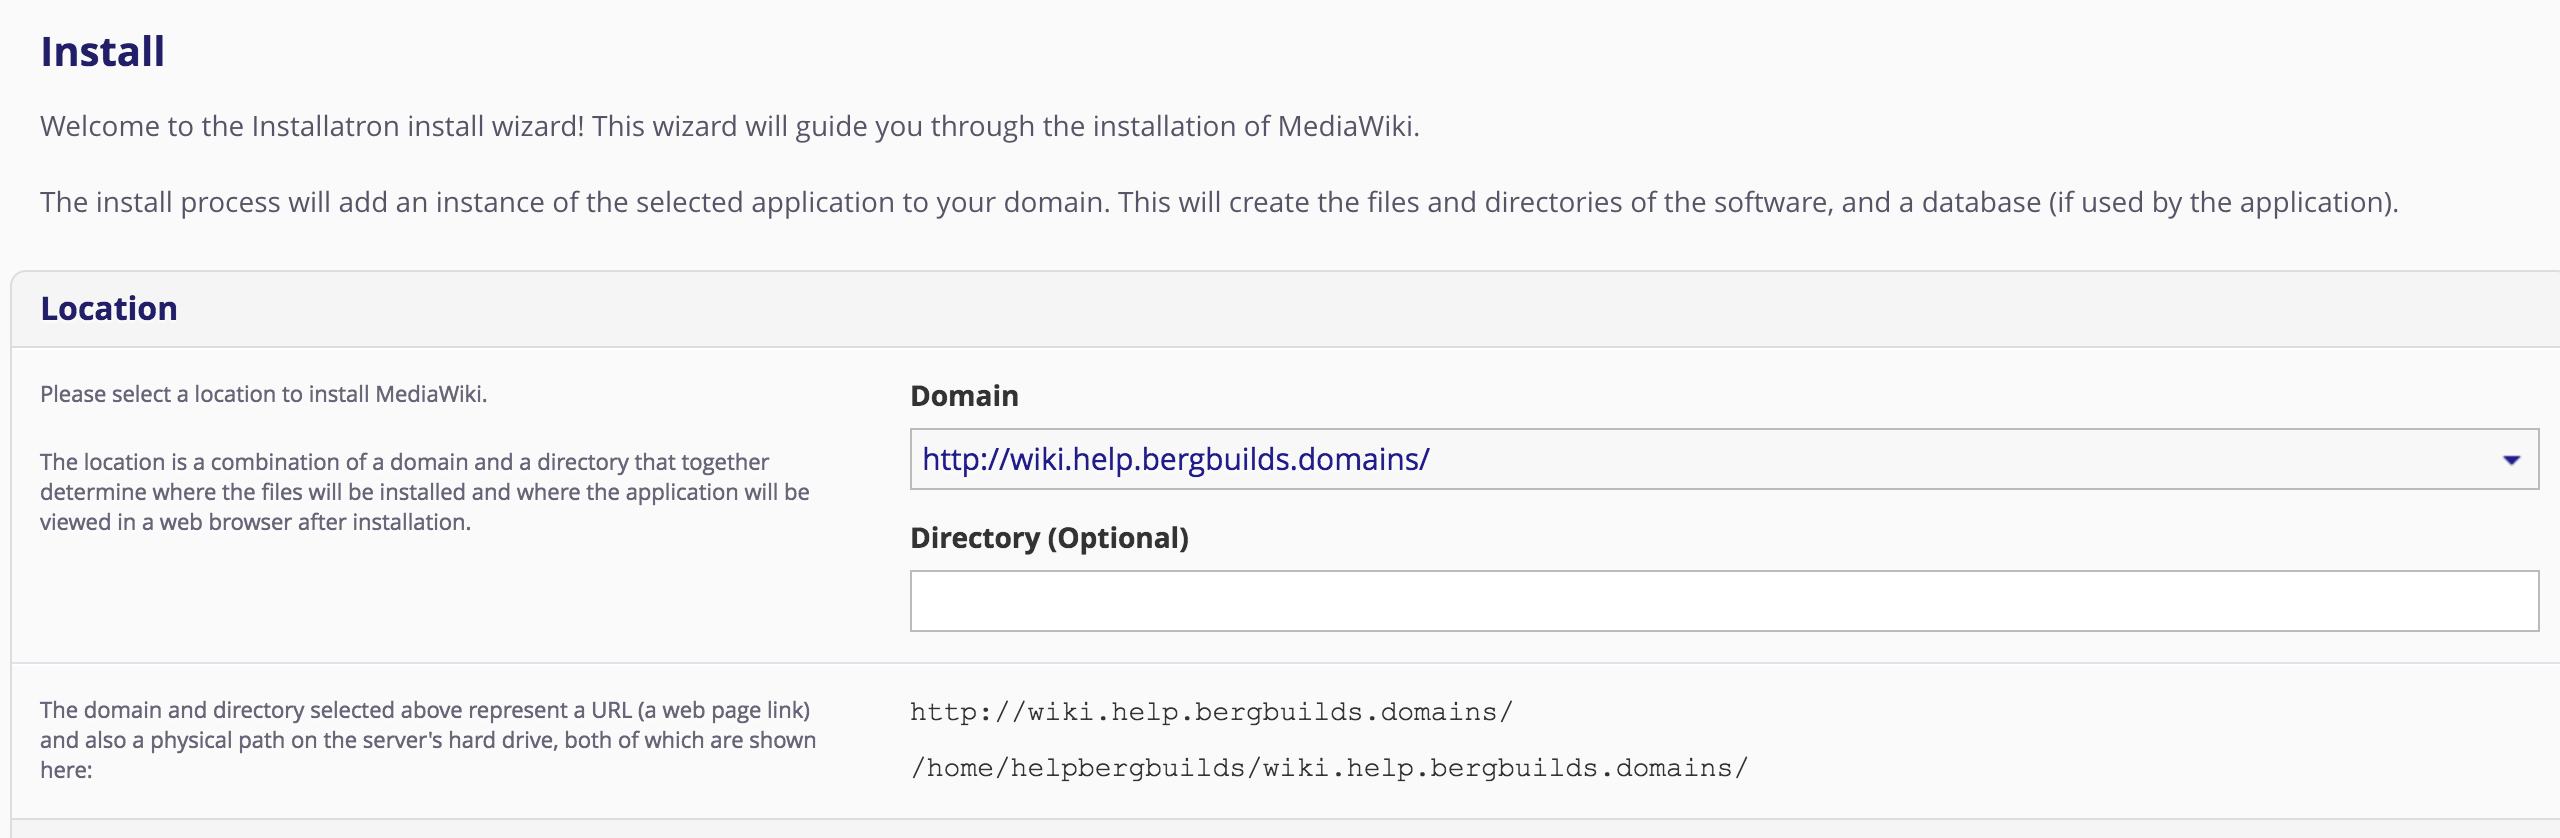 installing into the wiki subdomain